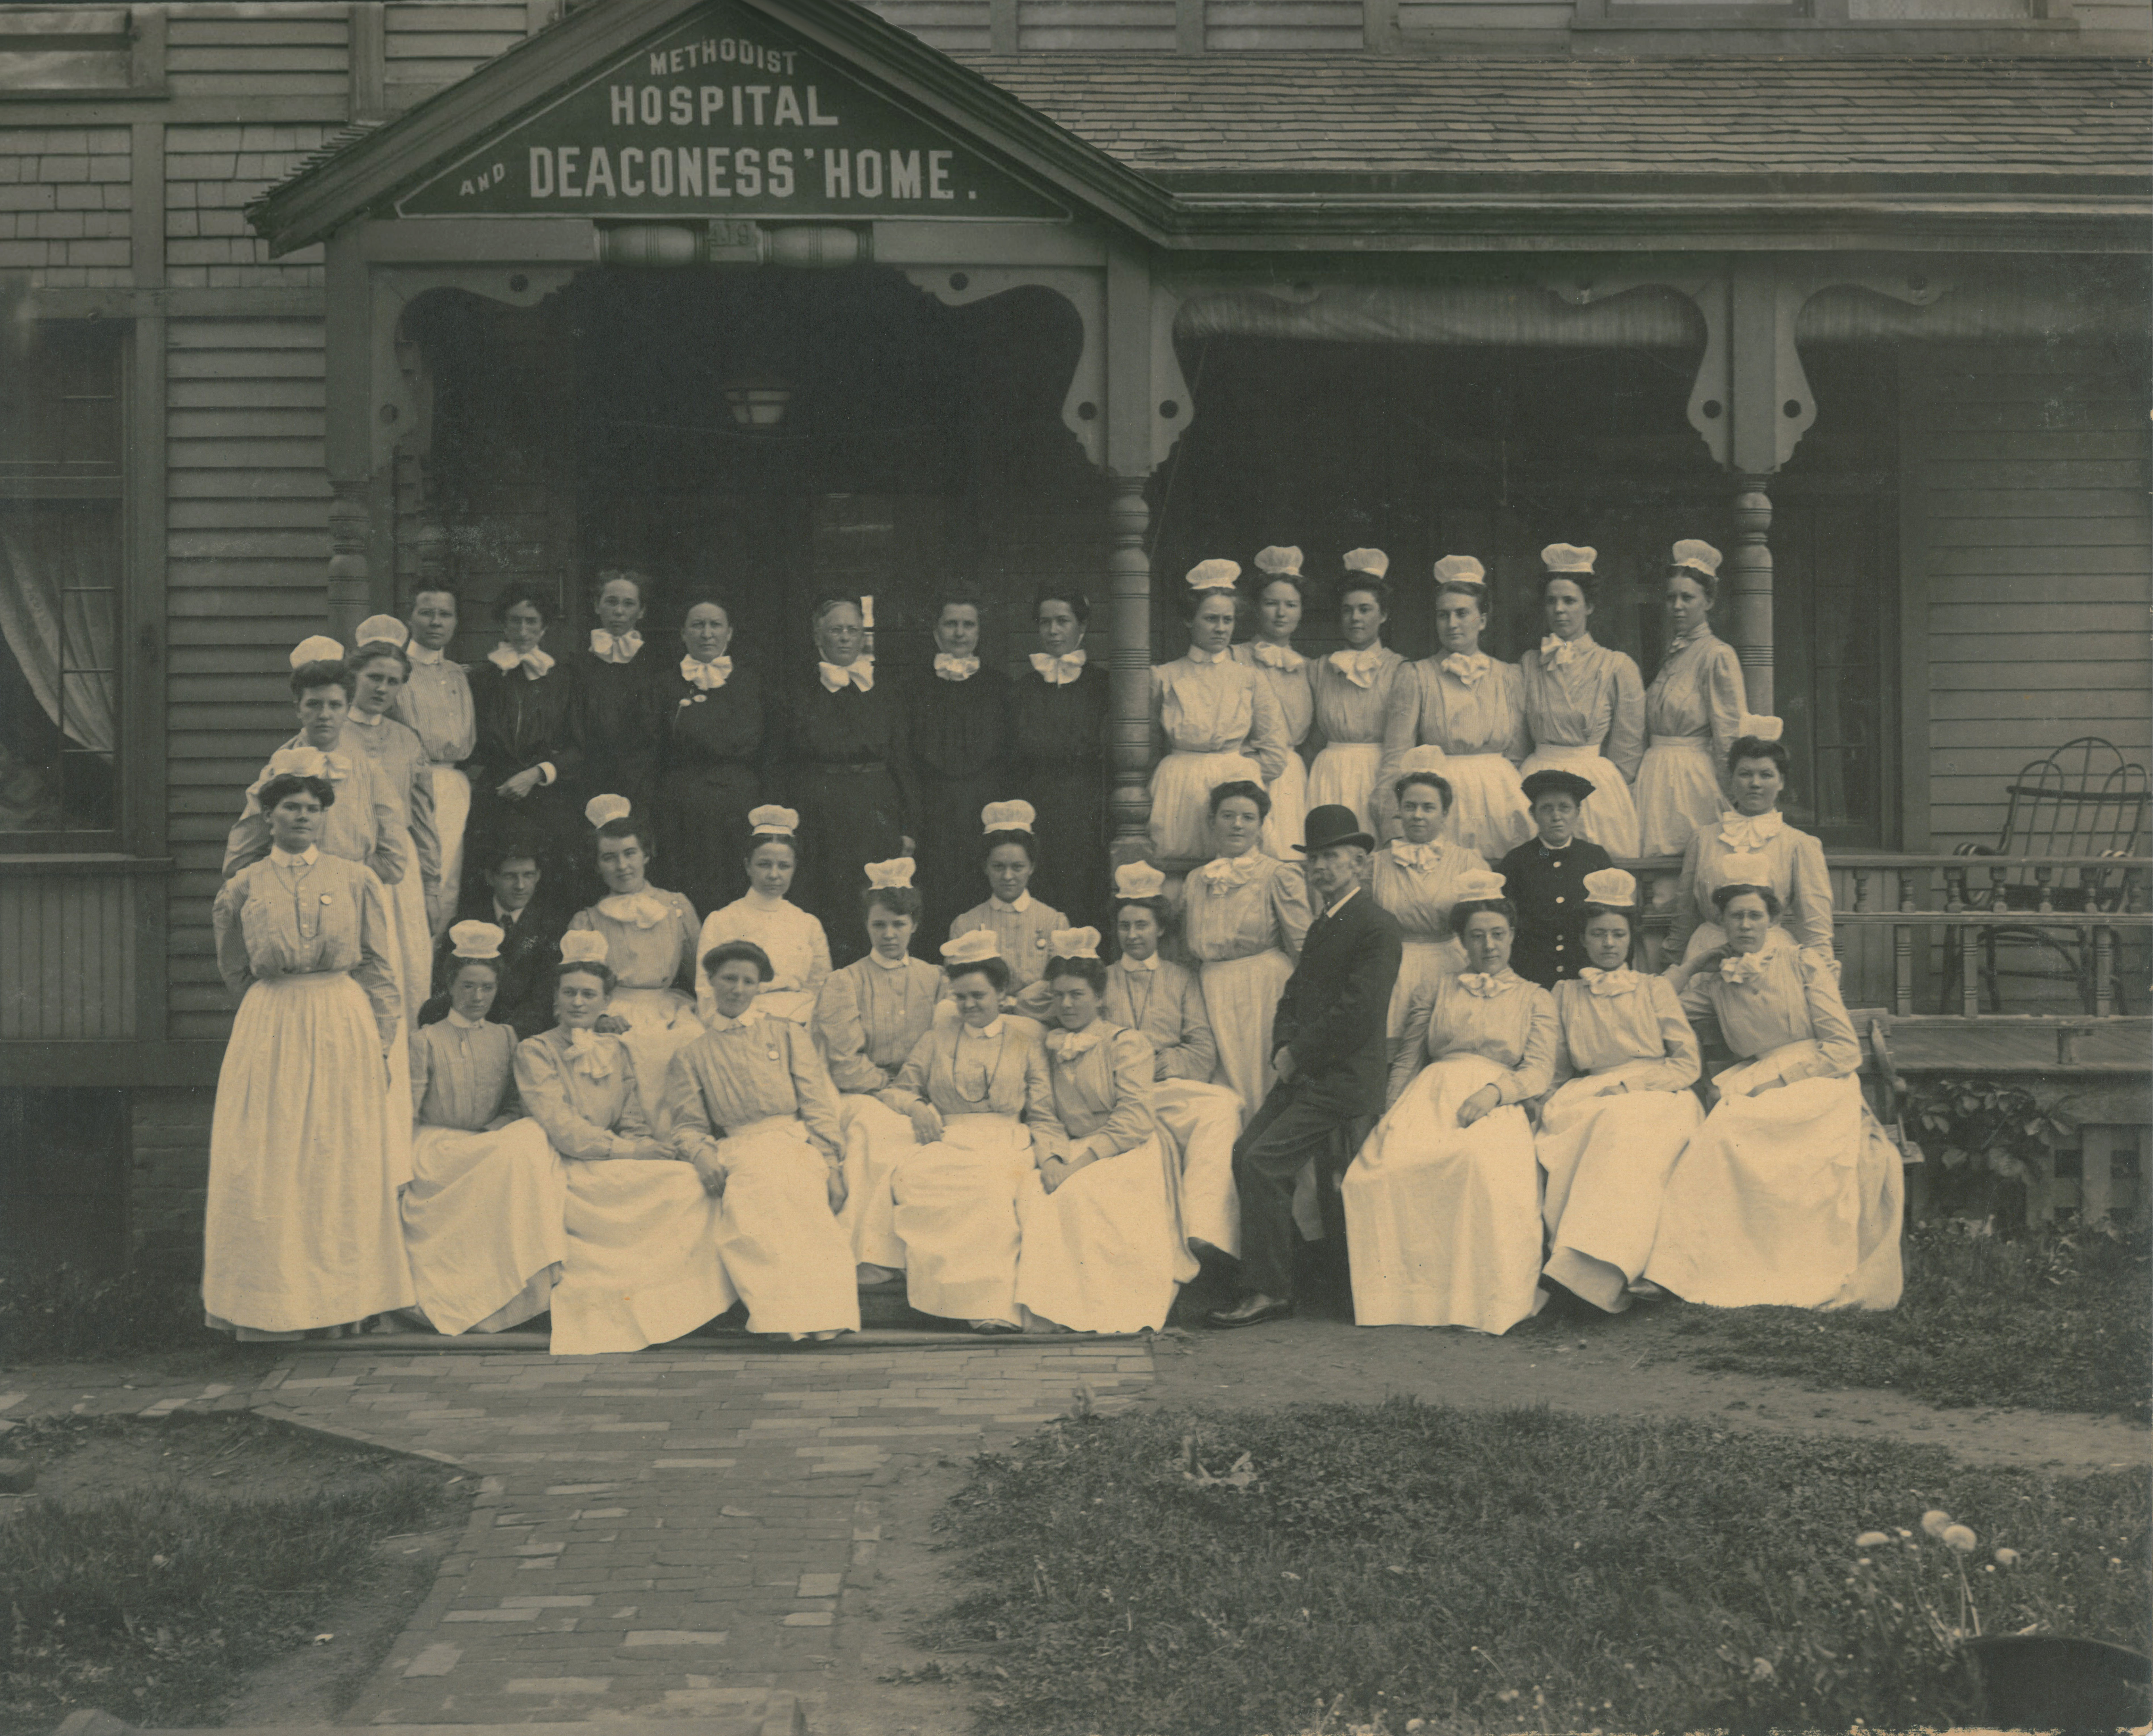 Black and white photo of one of the first classes of Nebraska Methodist College, set up in front of the Methodist Hospital and Deaconess' Home